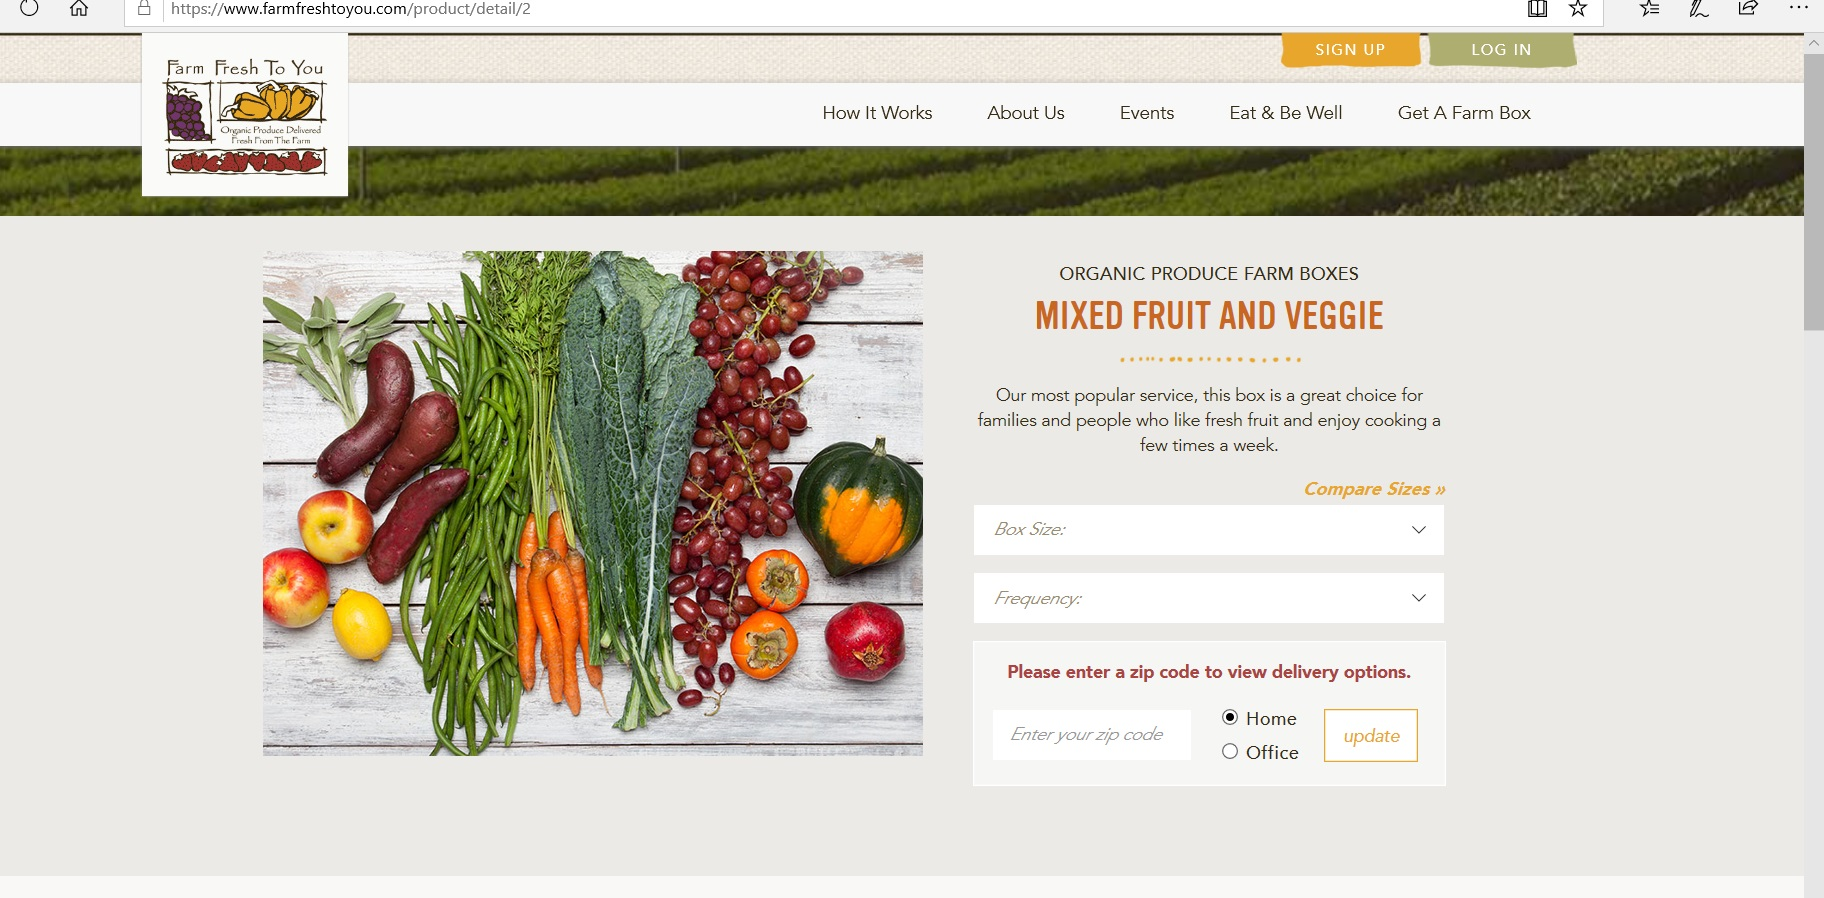 Product description of a Mixed Fruit and Veggie box.